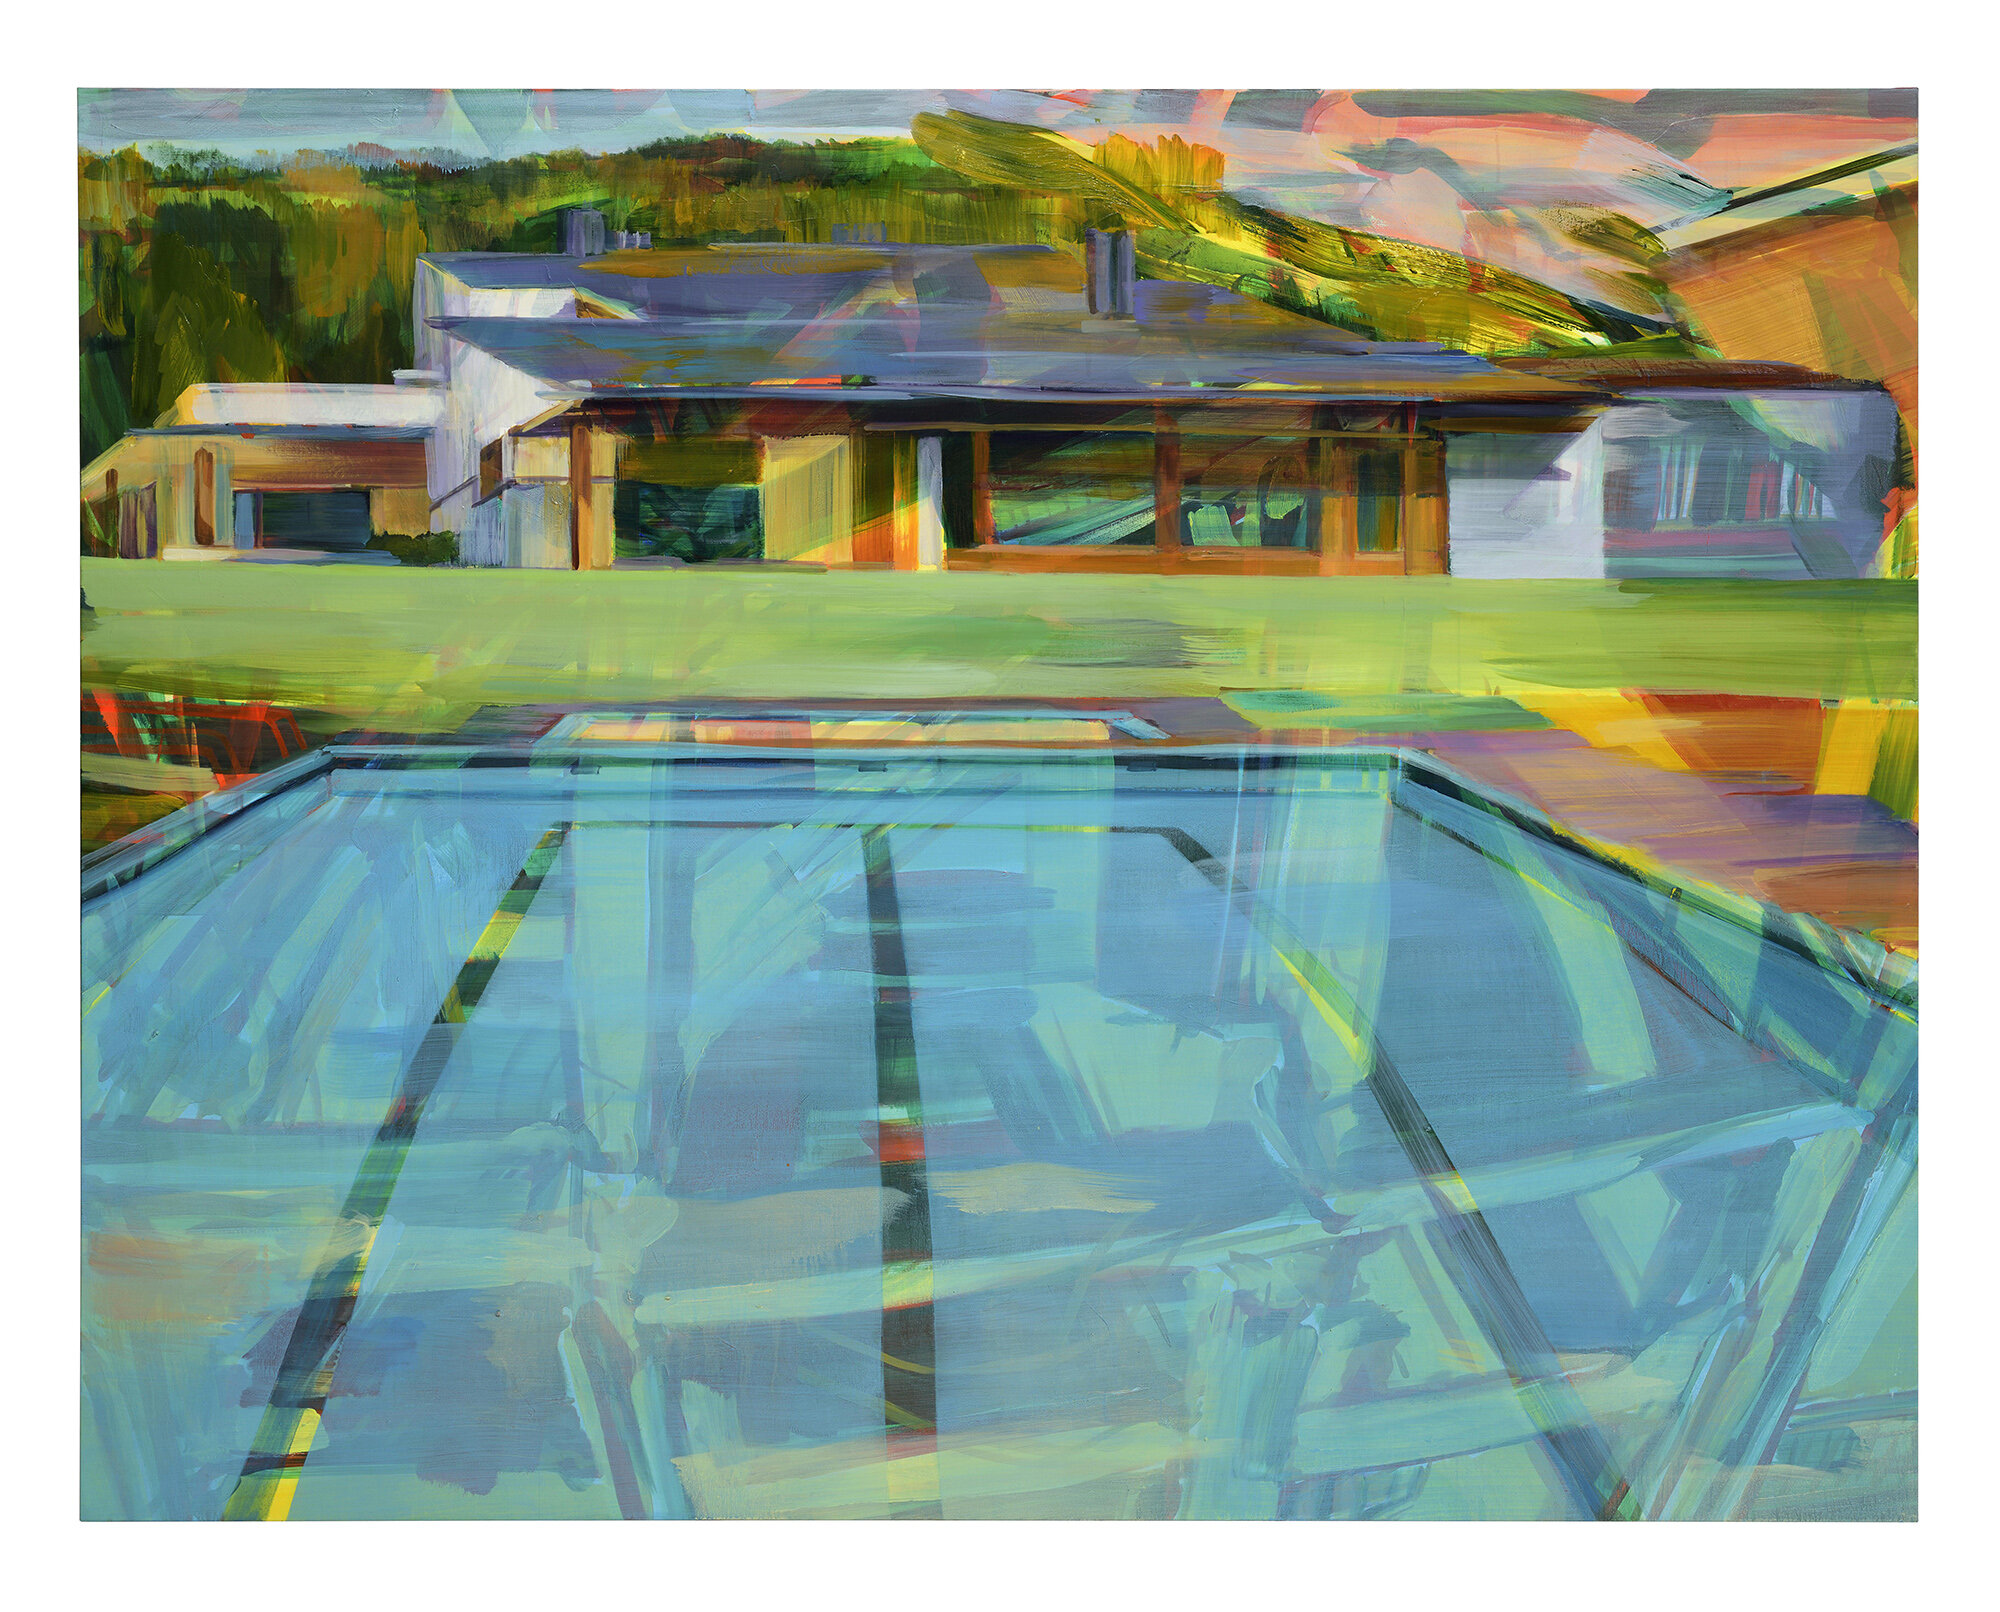 Volume and Surface (Honde valley pool et la Maison Louis Carré) , 2018, oil on canvas, 140x180cm